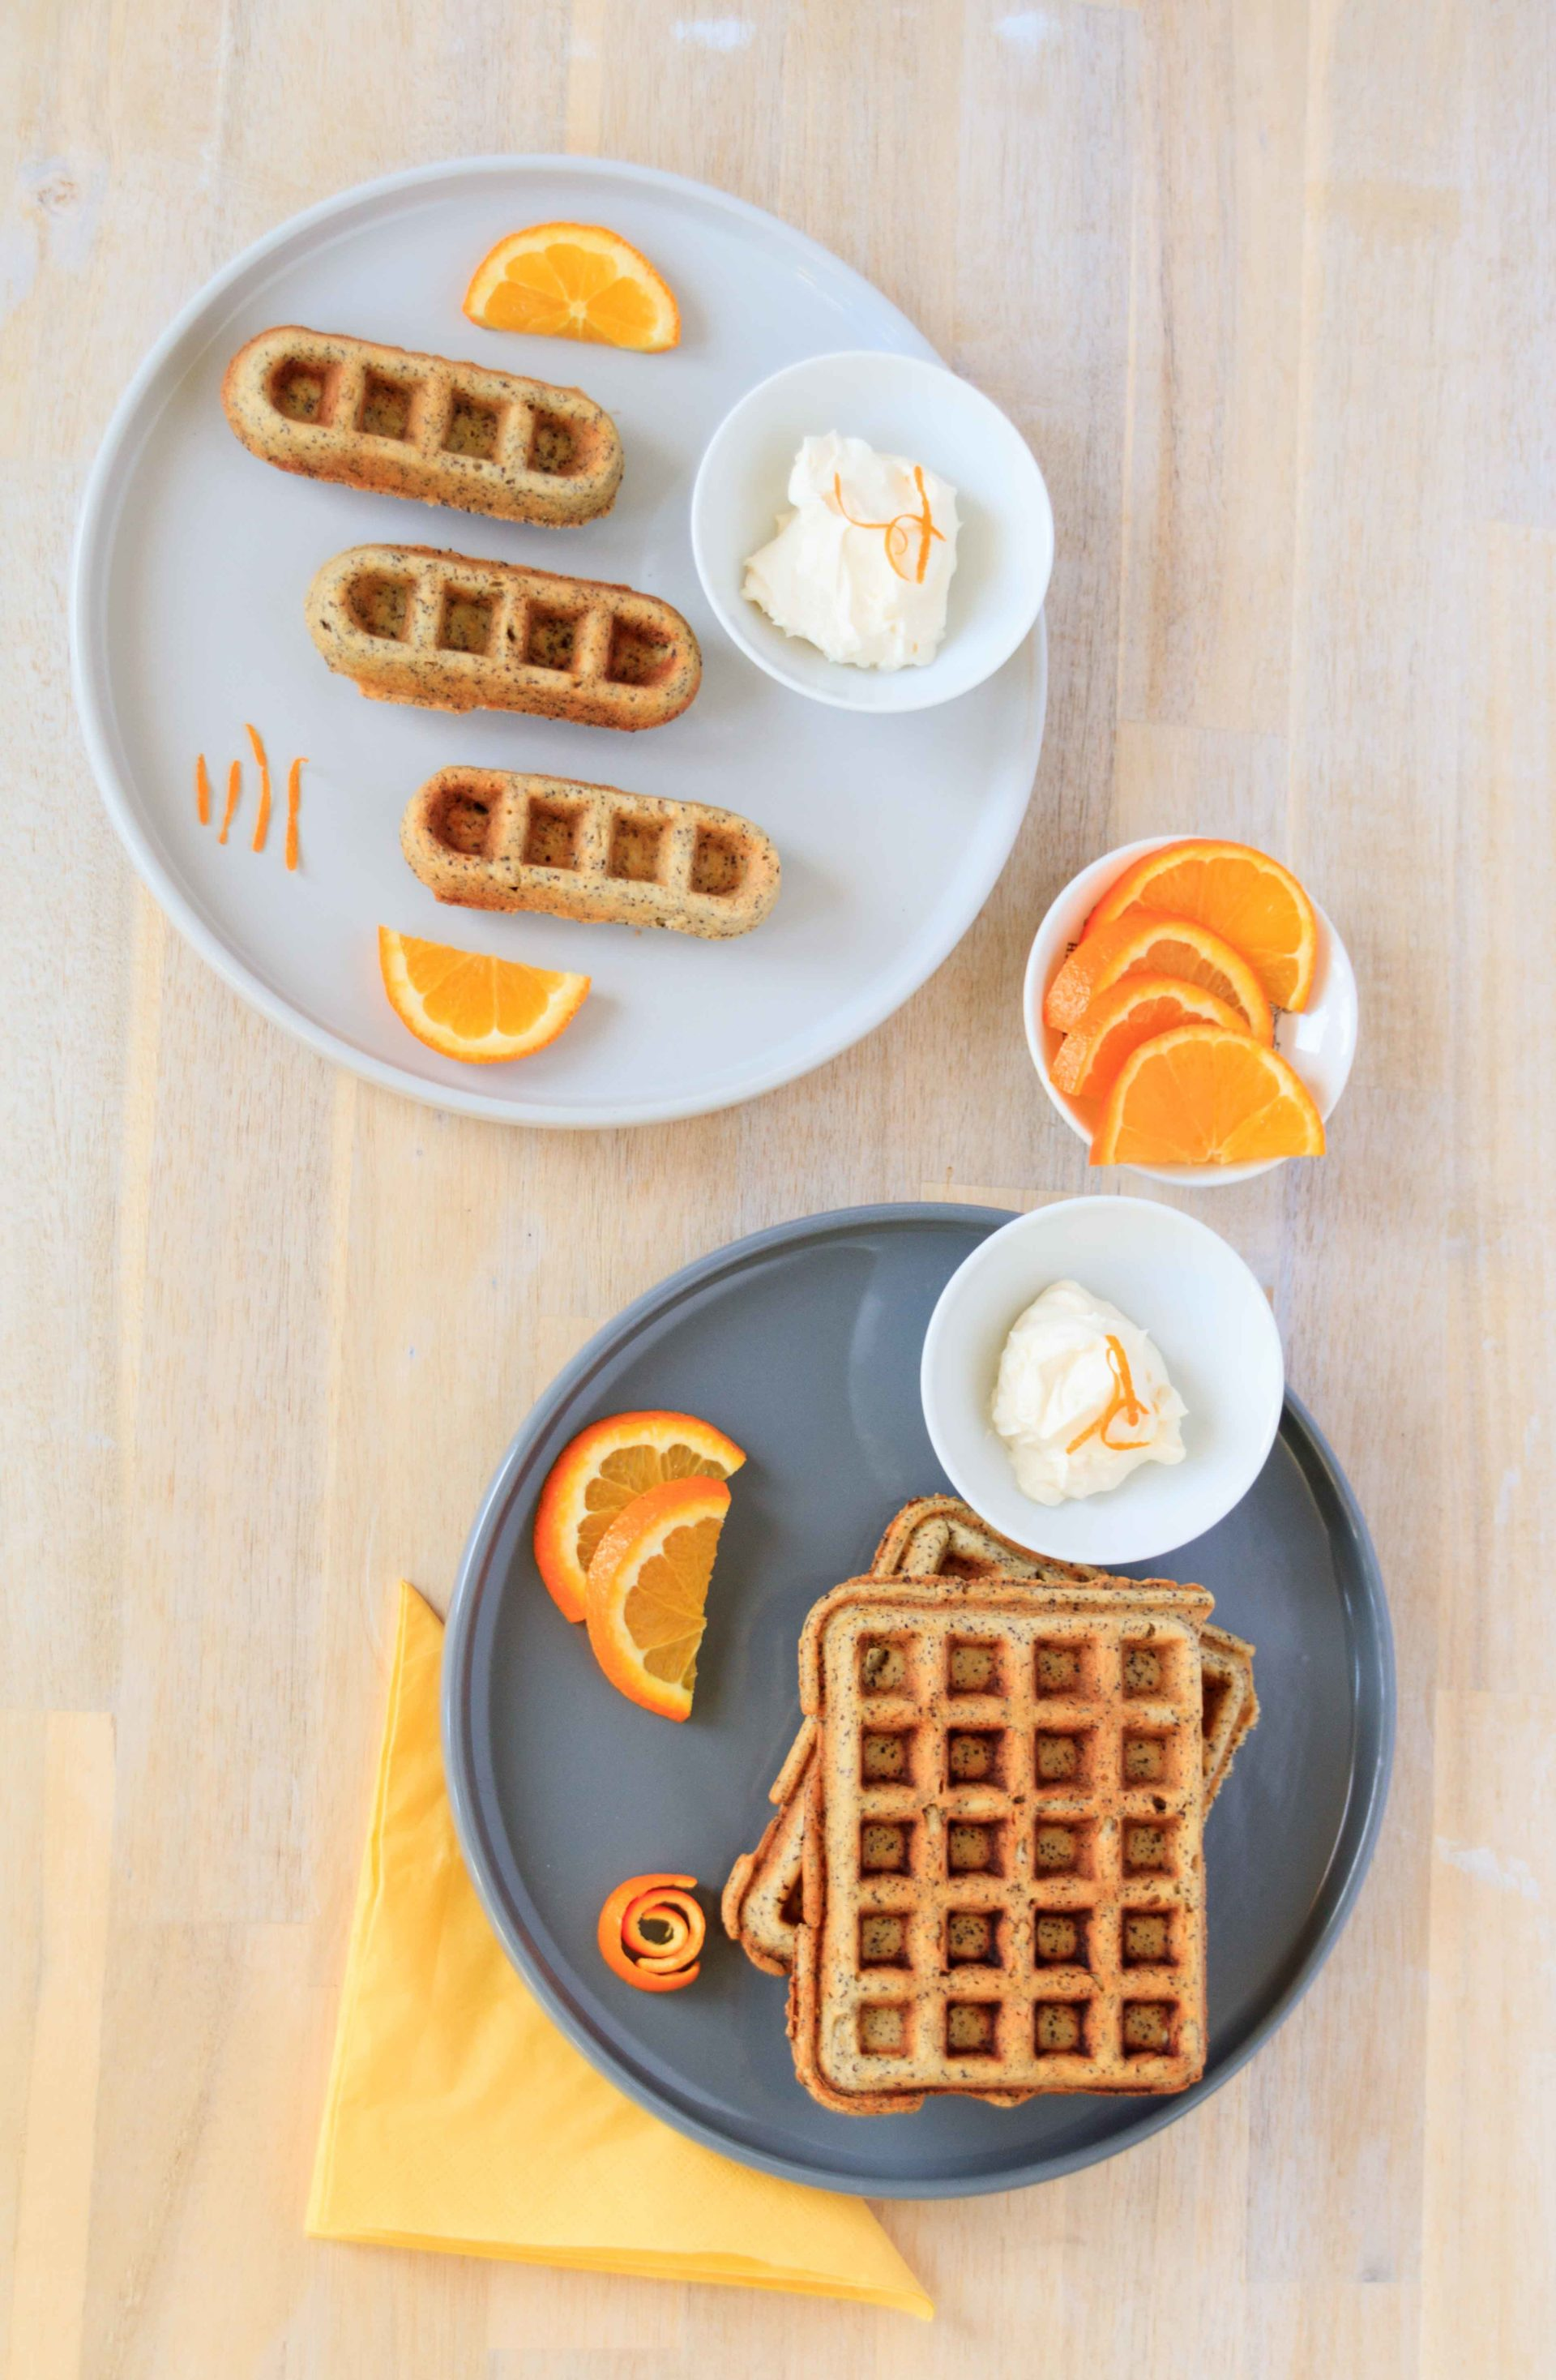 Orangen Waffeln mit Mohn und Ingwerschmand // Orange Waffles with poppyseed and sour creme with ginger by http://babyrockmyday.com/orangen-waffeln-mit-mohn/